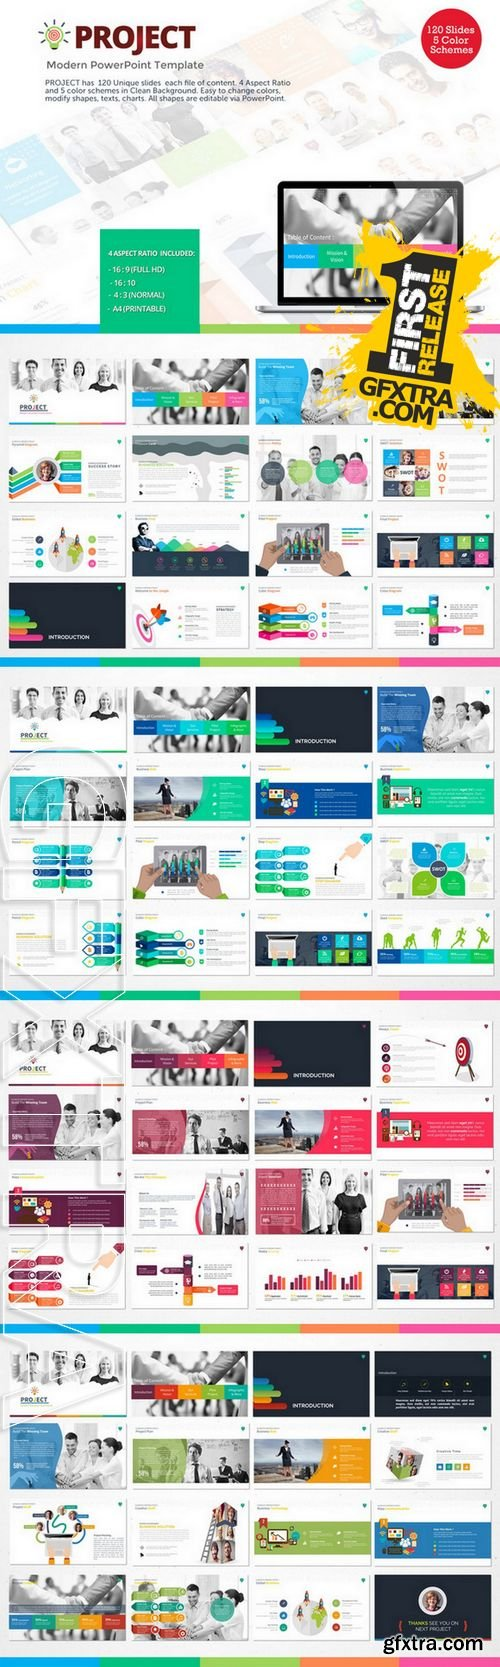 Project - Modern PowerPoint Template - CM 223351